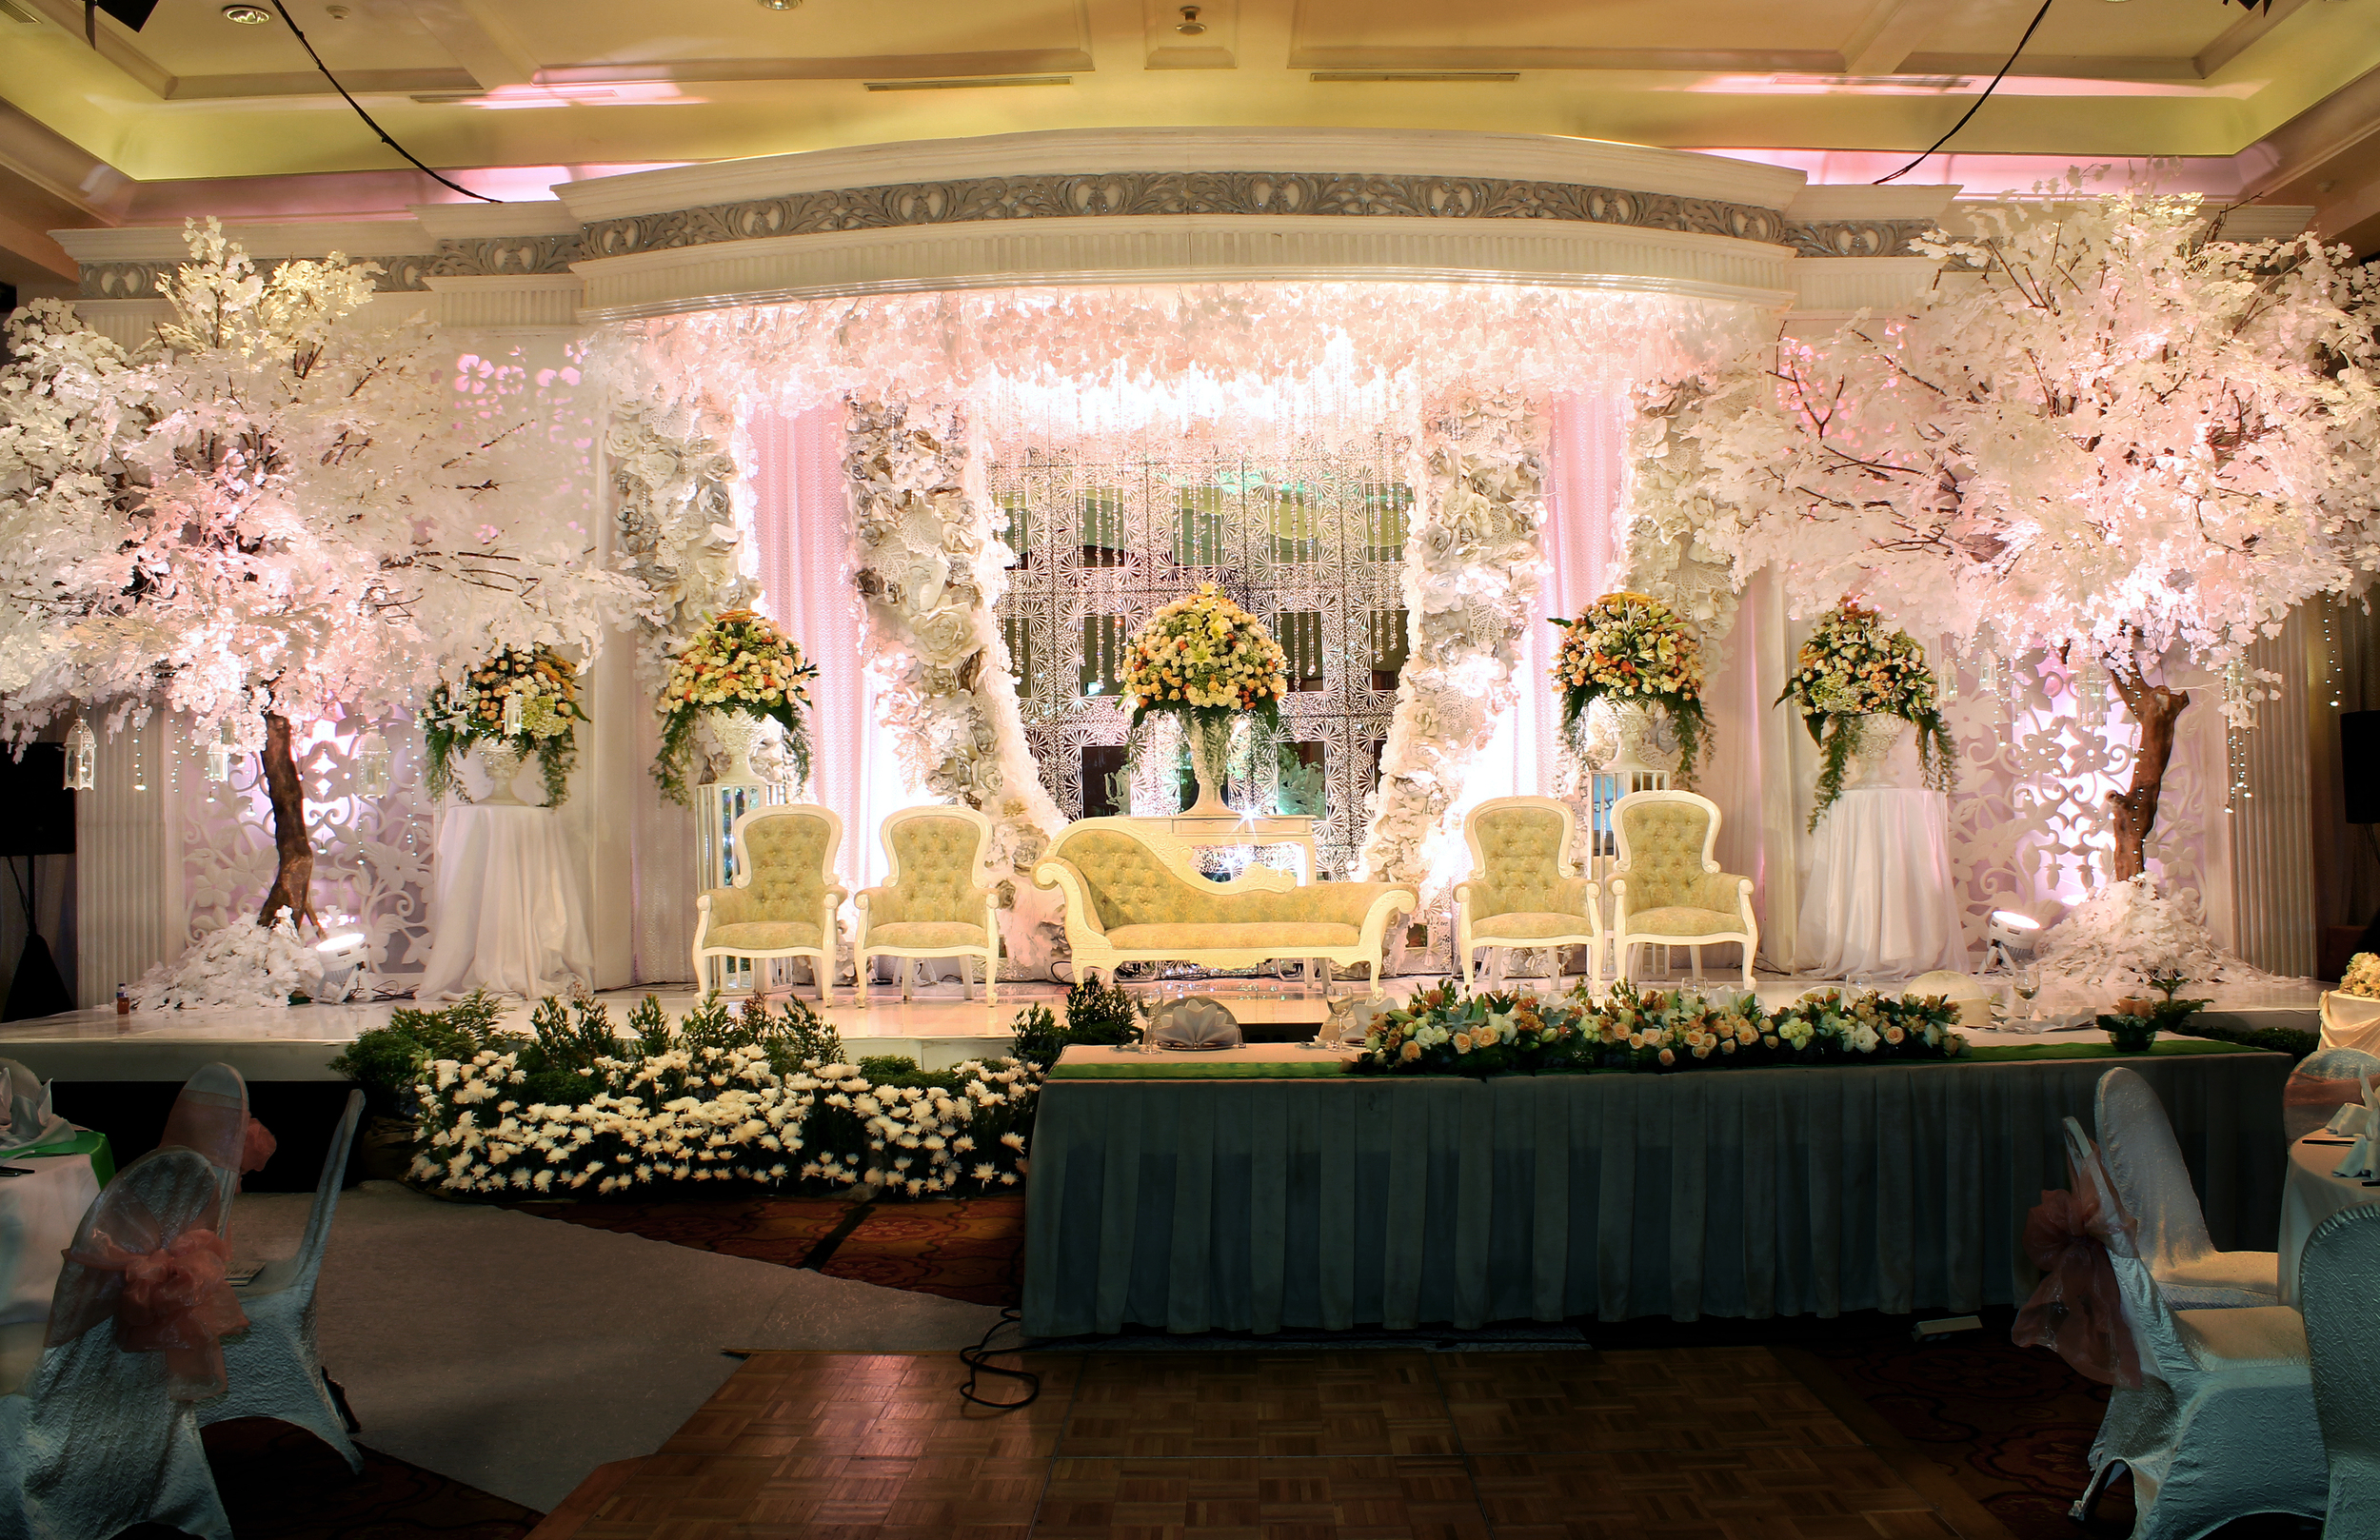 Azalia decorationwedding decoration azalia decoration glamourous and elegant wedding decoration j w marriott jakarta by azalia decoration junglespirit Gallery